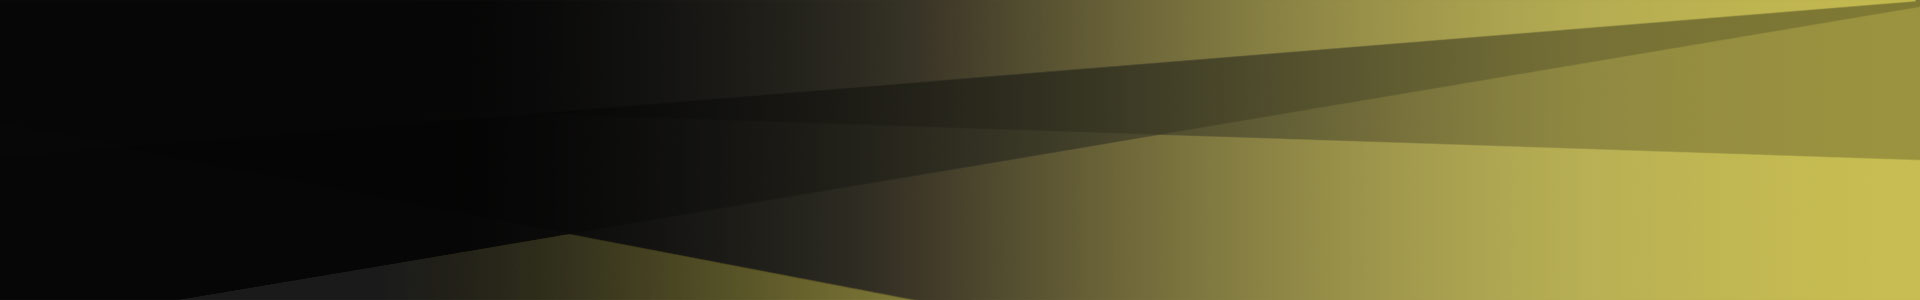 slider-background-gold